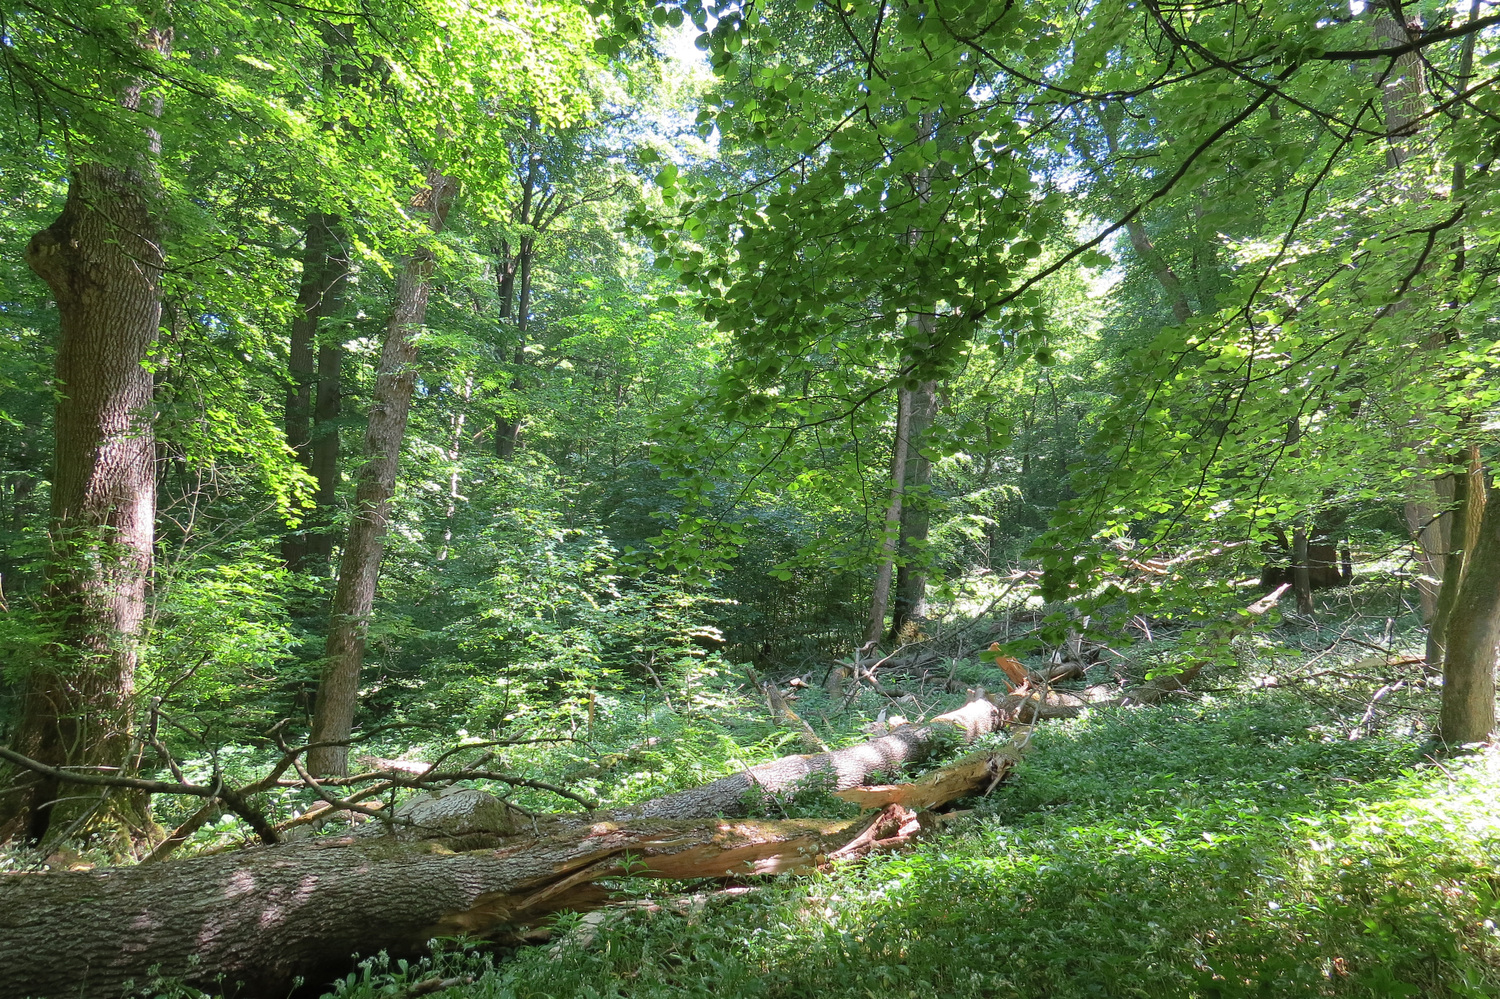 Life and Death: Natural forest dynamics in the Hainich National Park as part of the UNESCO World Natural Heritage Site